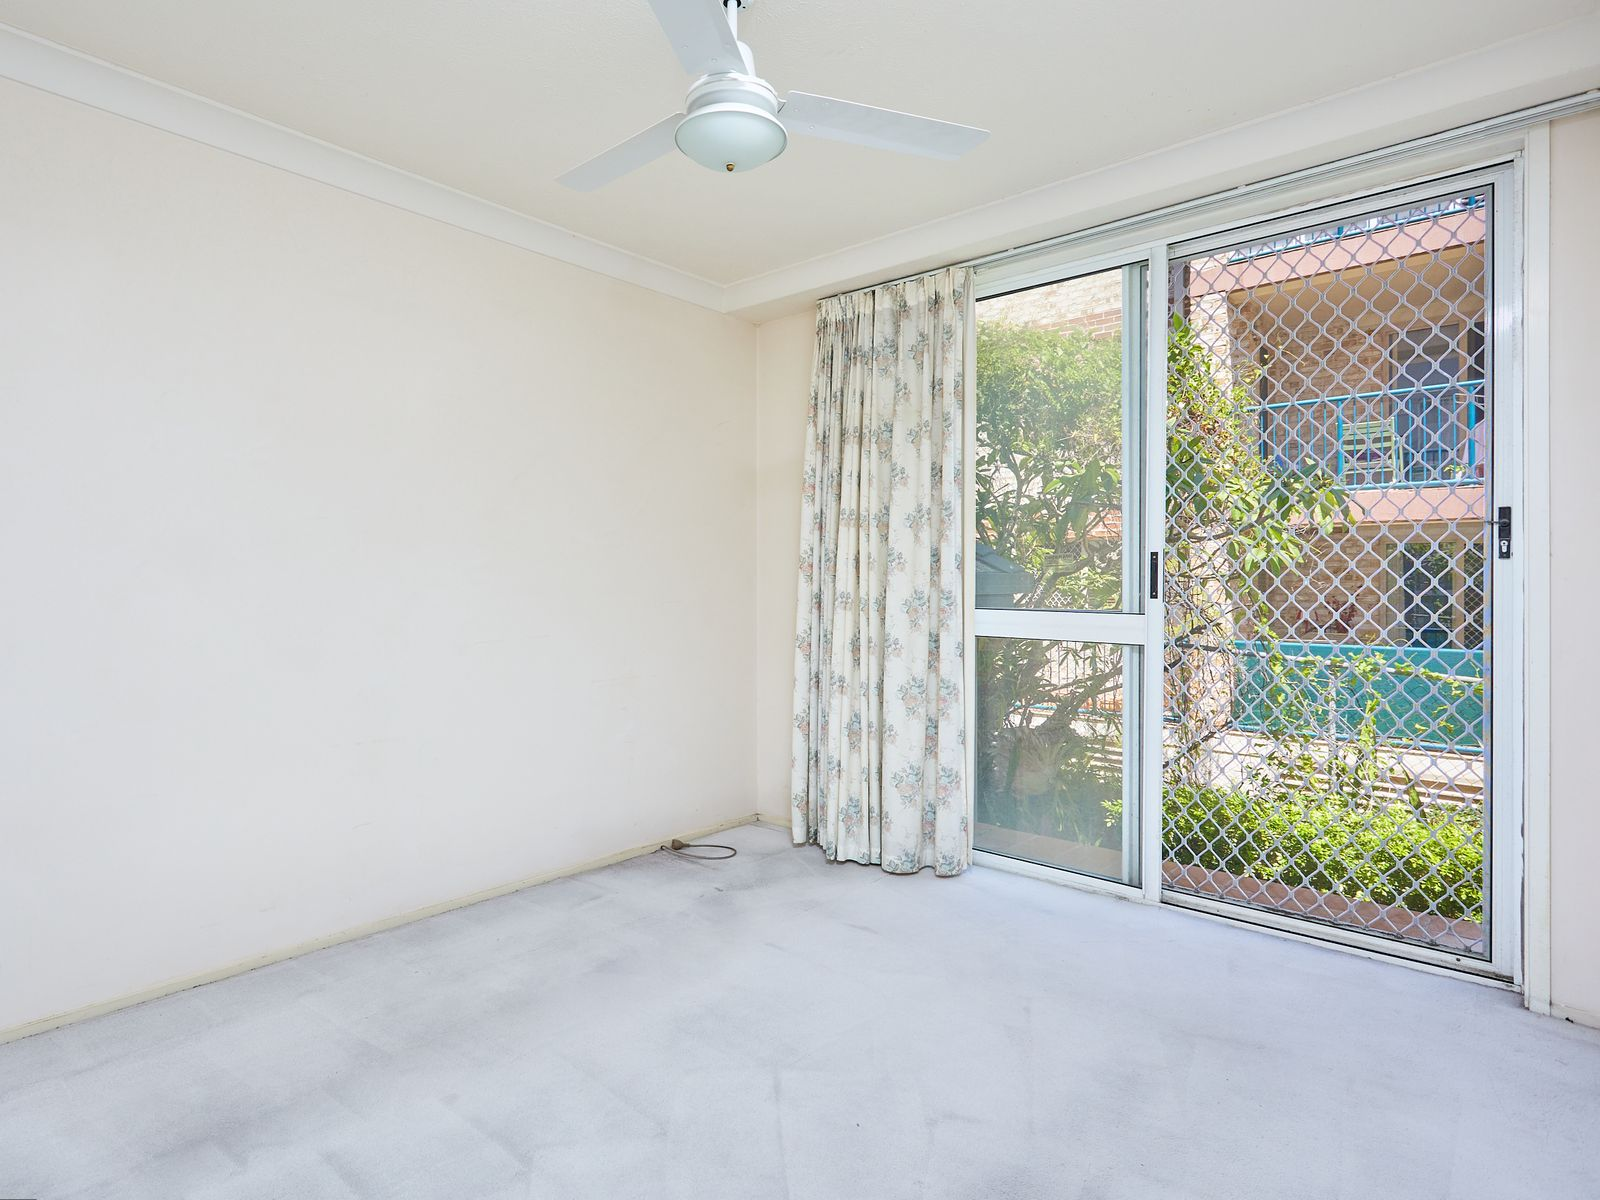 3/49 Bauer Street, Southport, QLD 4215